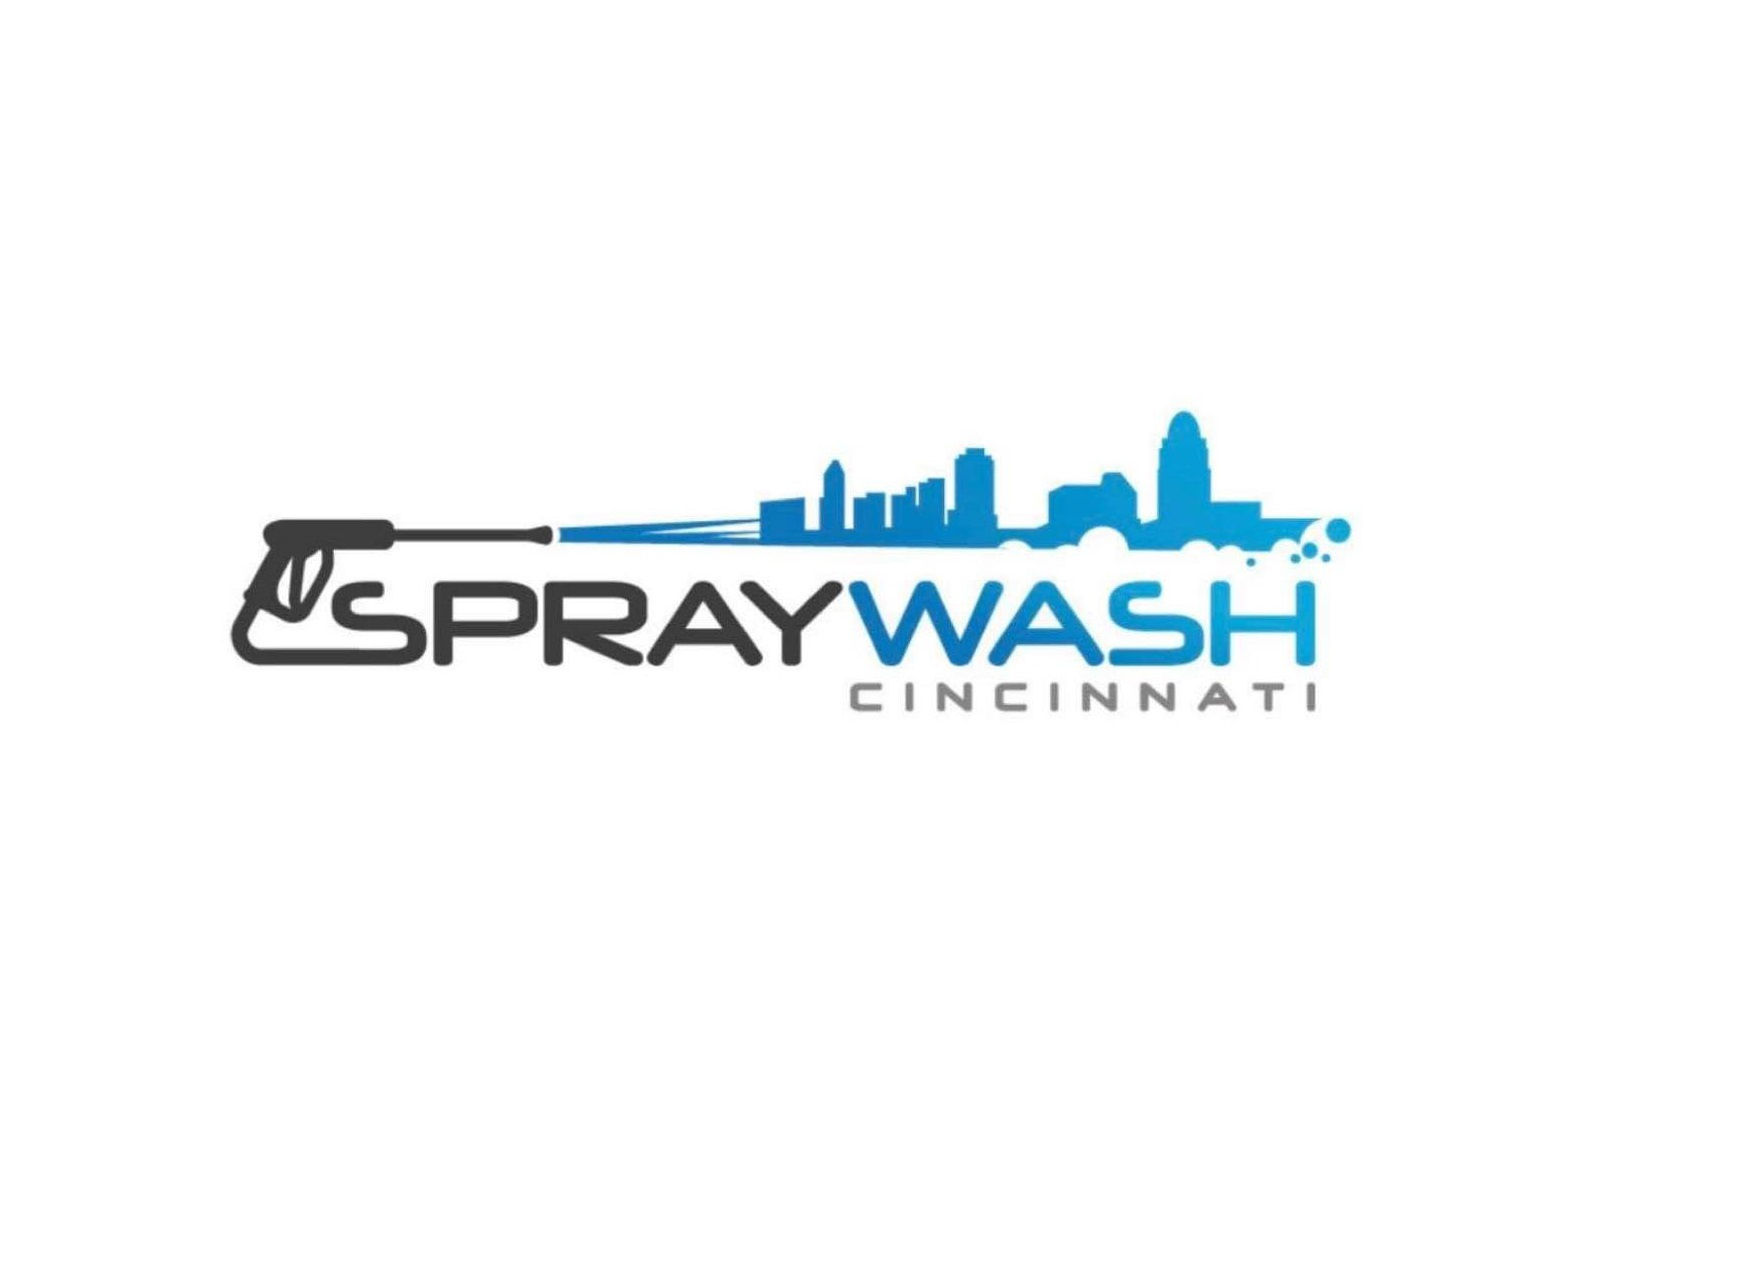 Spray Wash Cincinnati